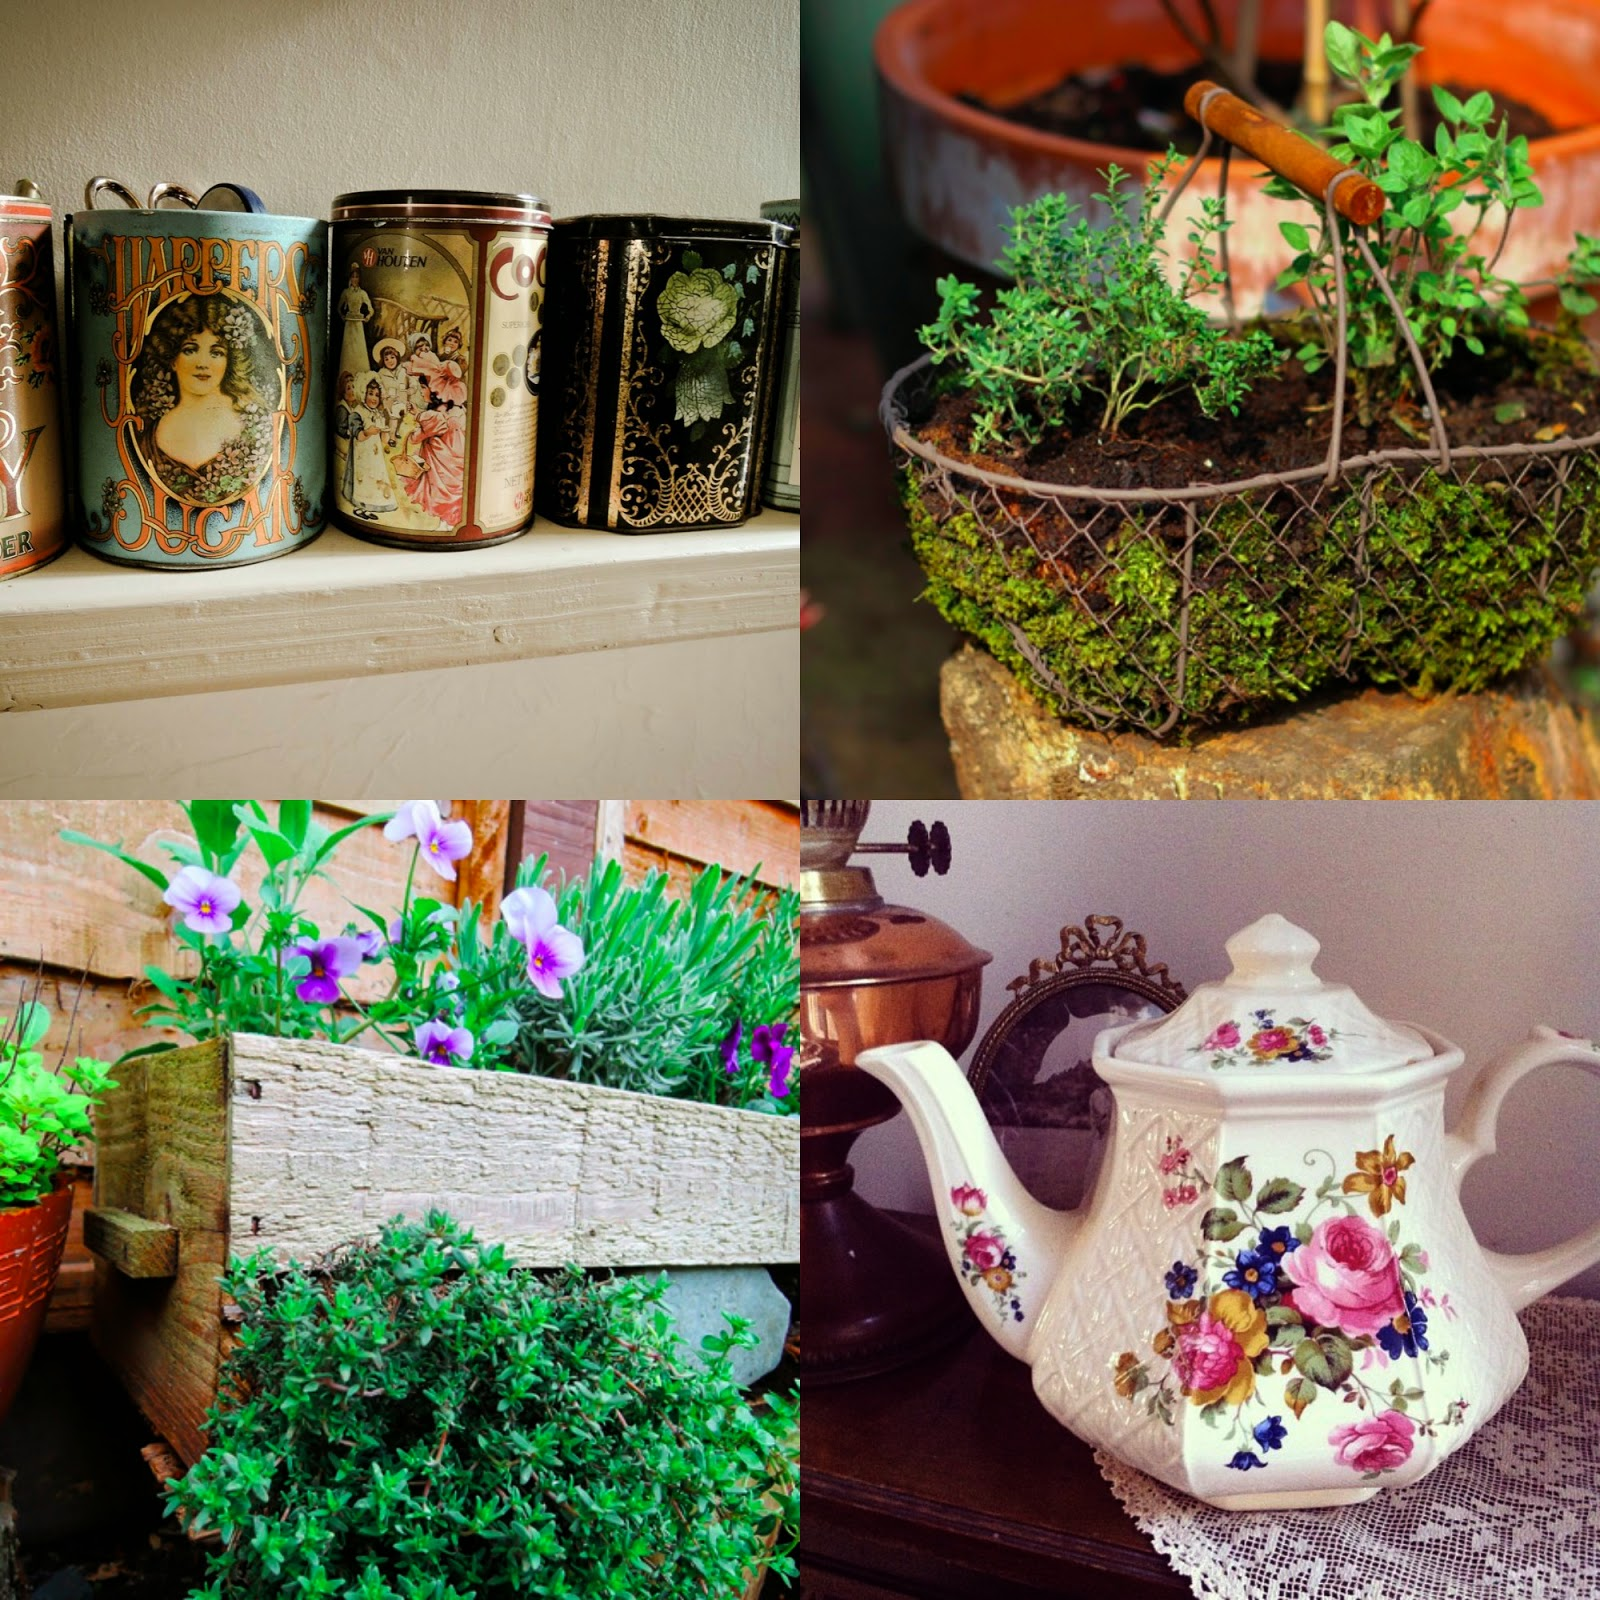 Planting in teapots, tins, baskets and boxes